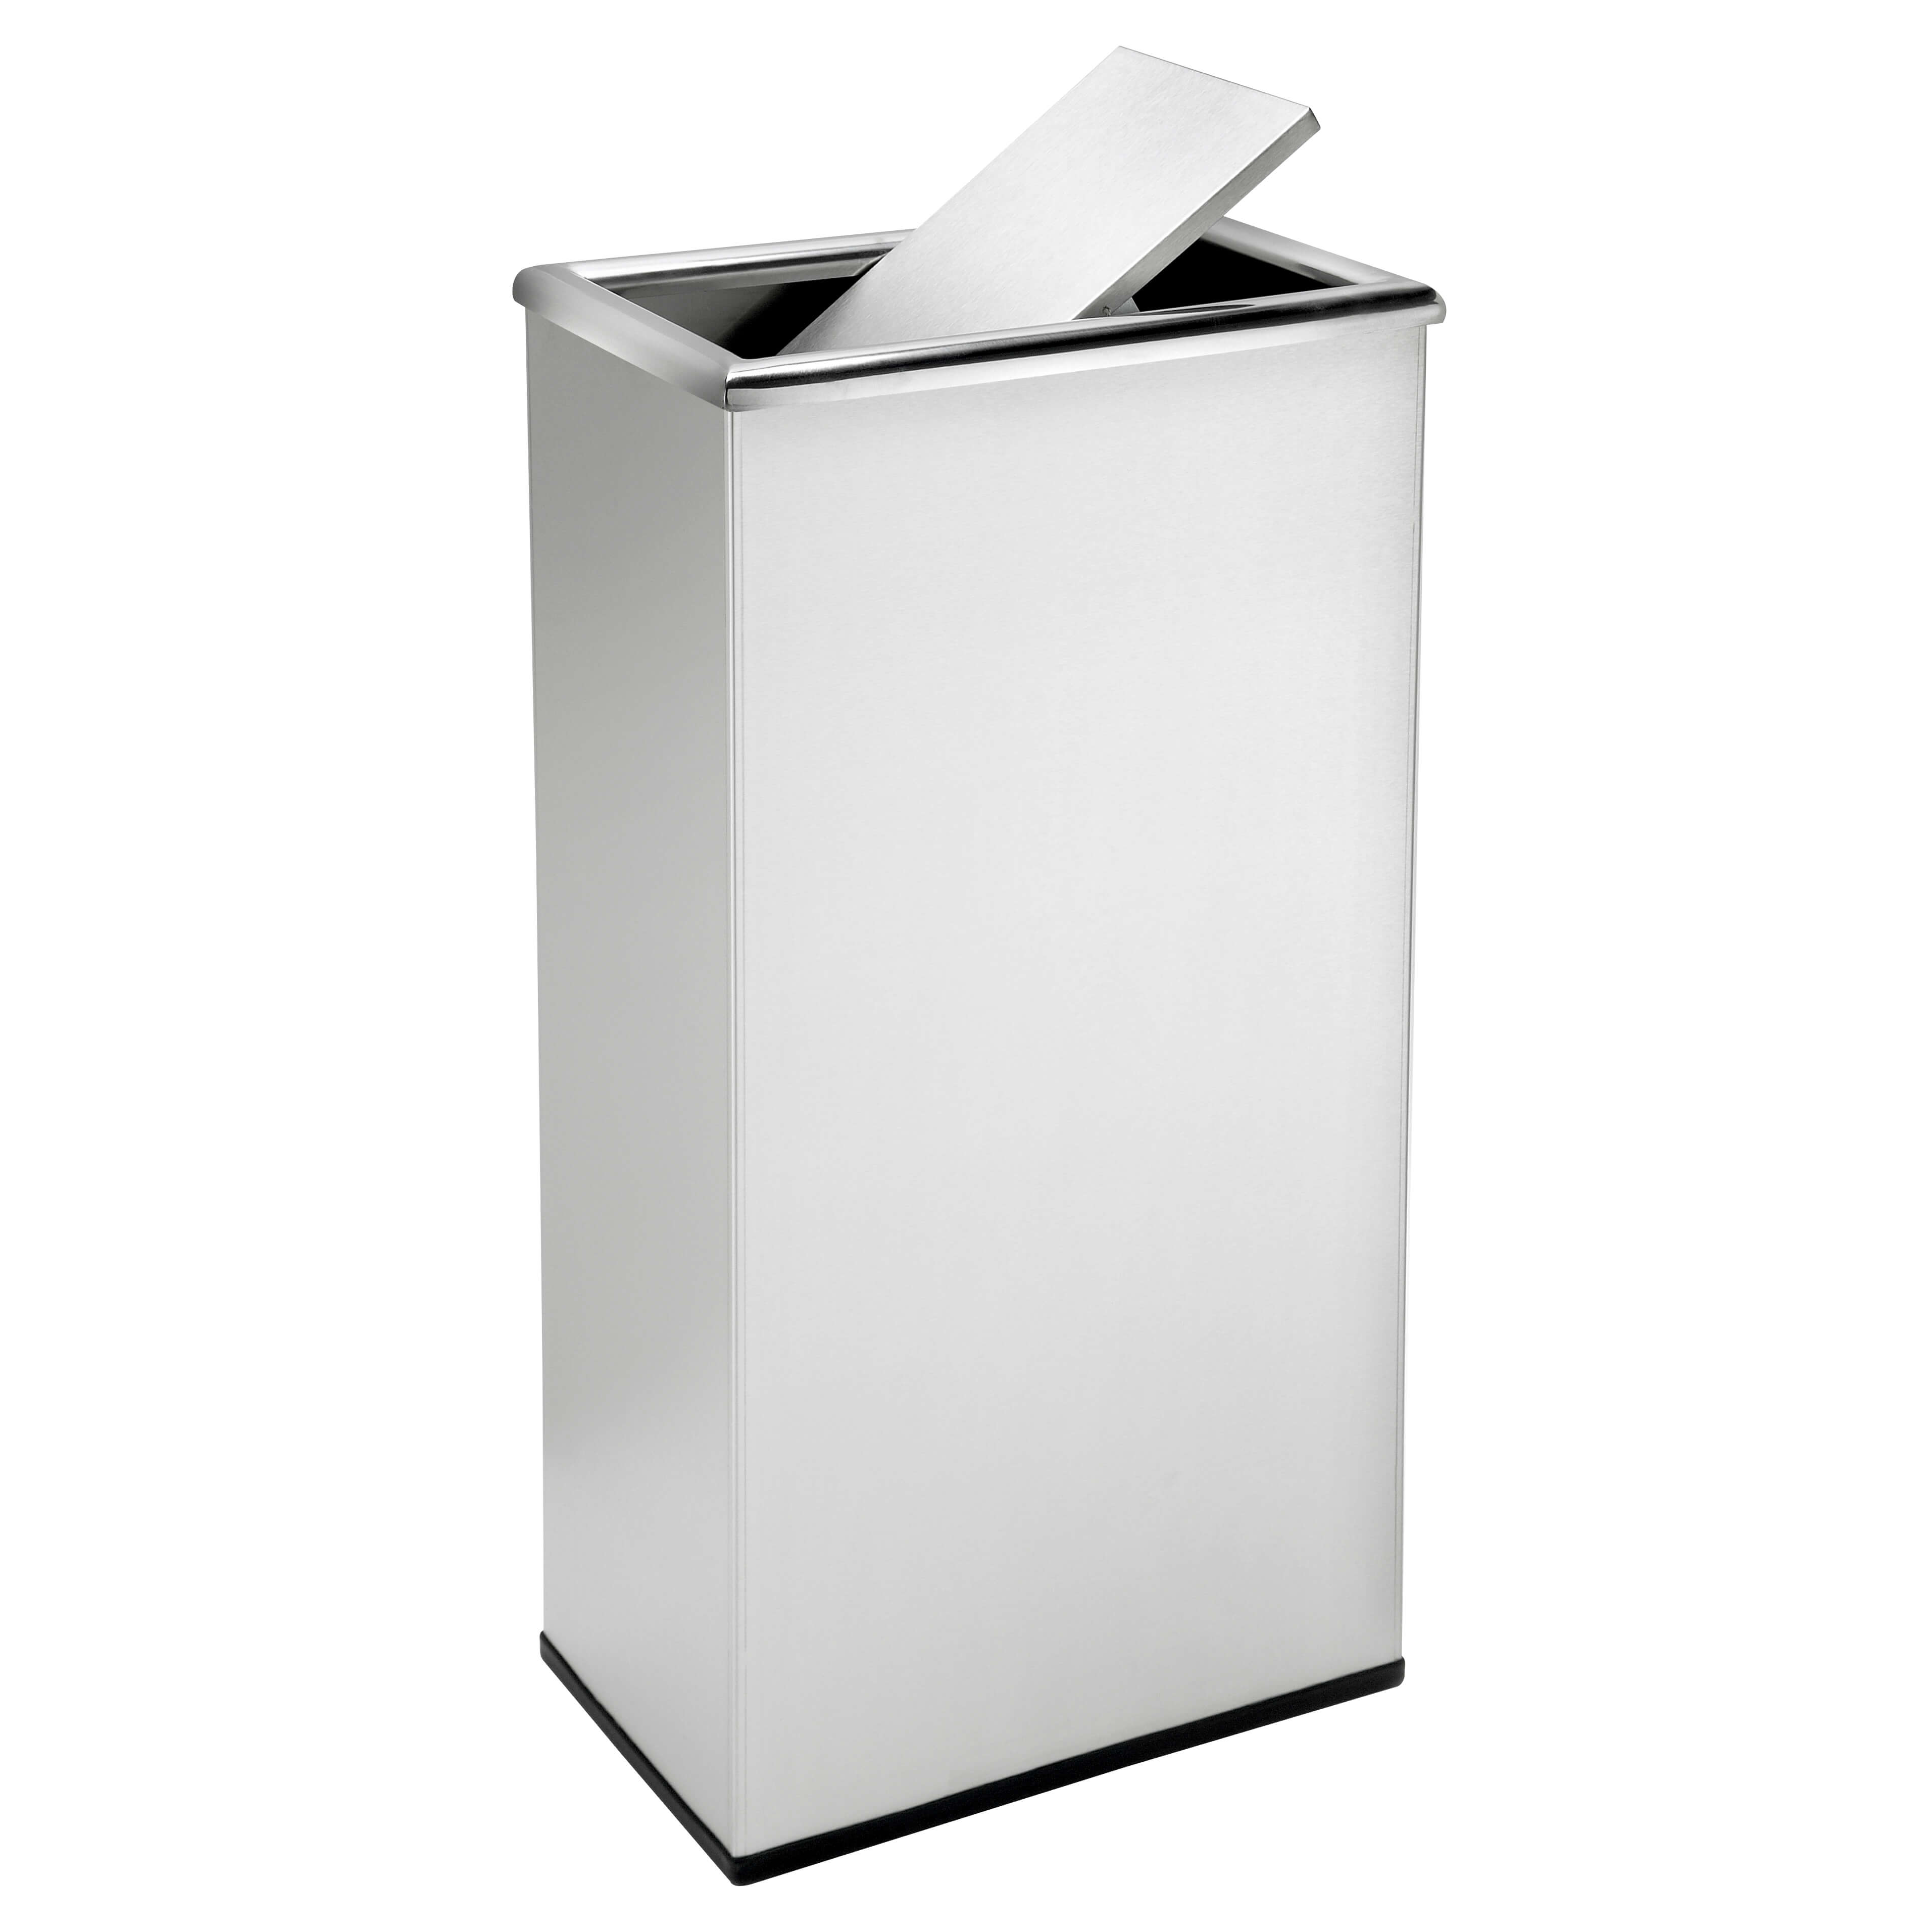 Stainless Steel Recycling Bins Rectangular Swivel Lid Waste Receptacle